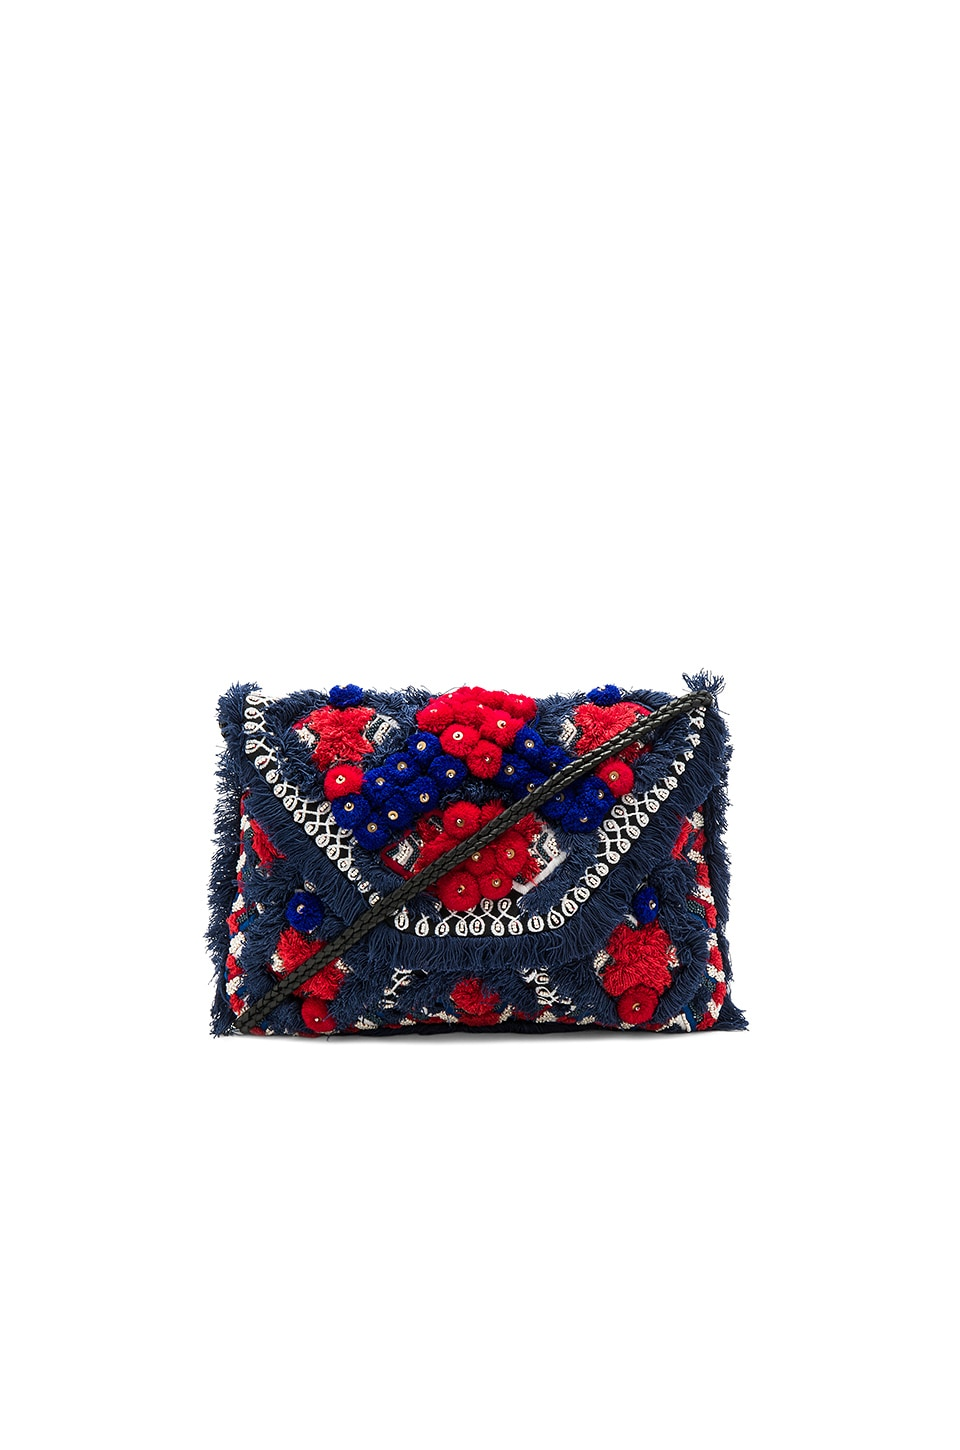 Antik Batik Sunny Wallet in Red & Black